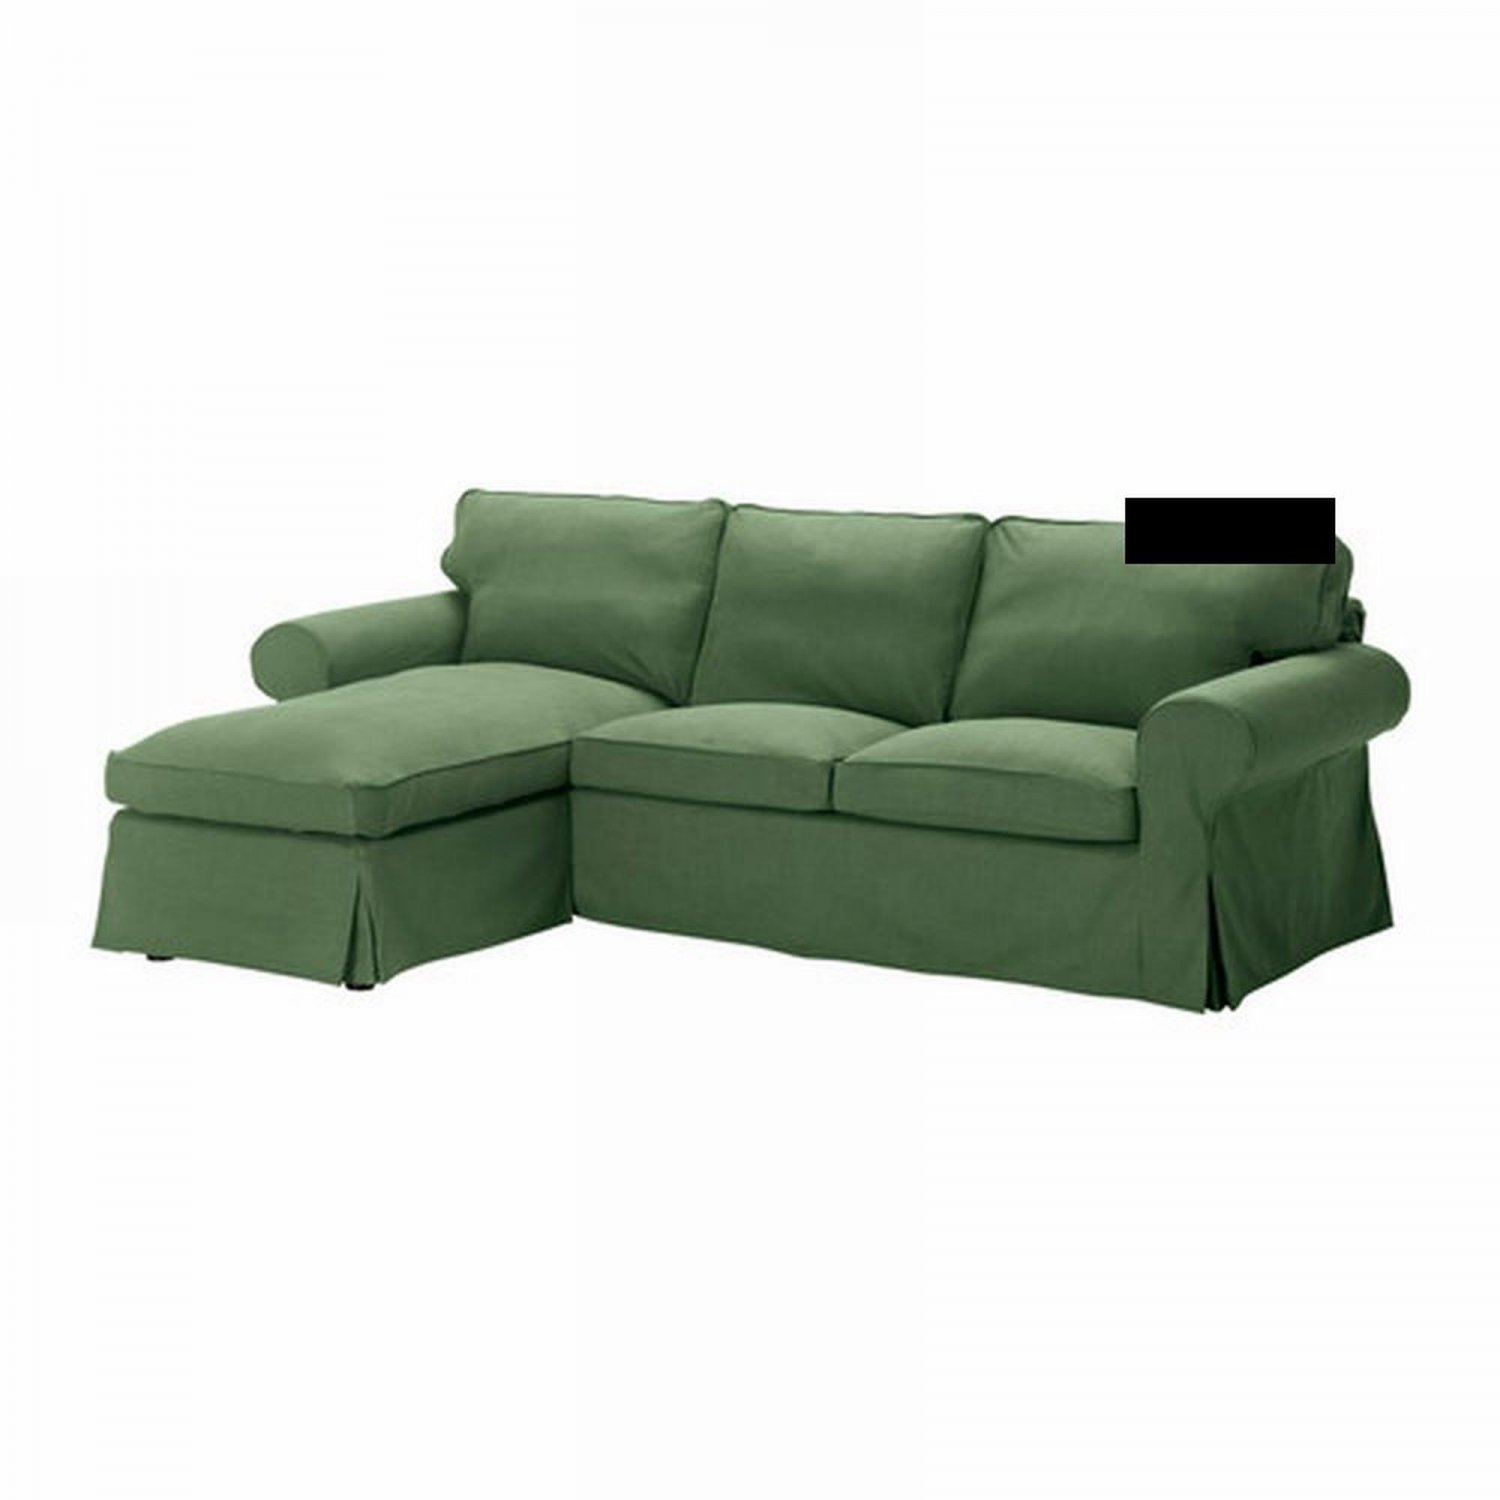 Ikea ektorp 2 seat loveseat w chaise cover 3 seat for Chaise couch cover